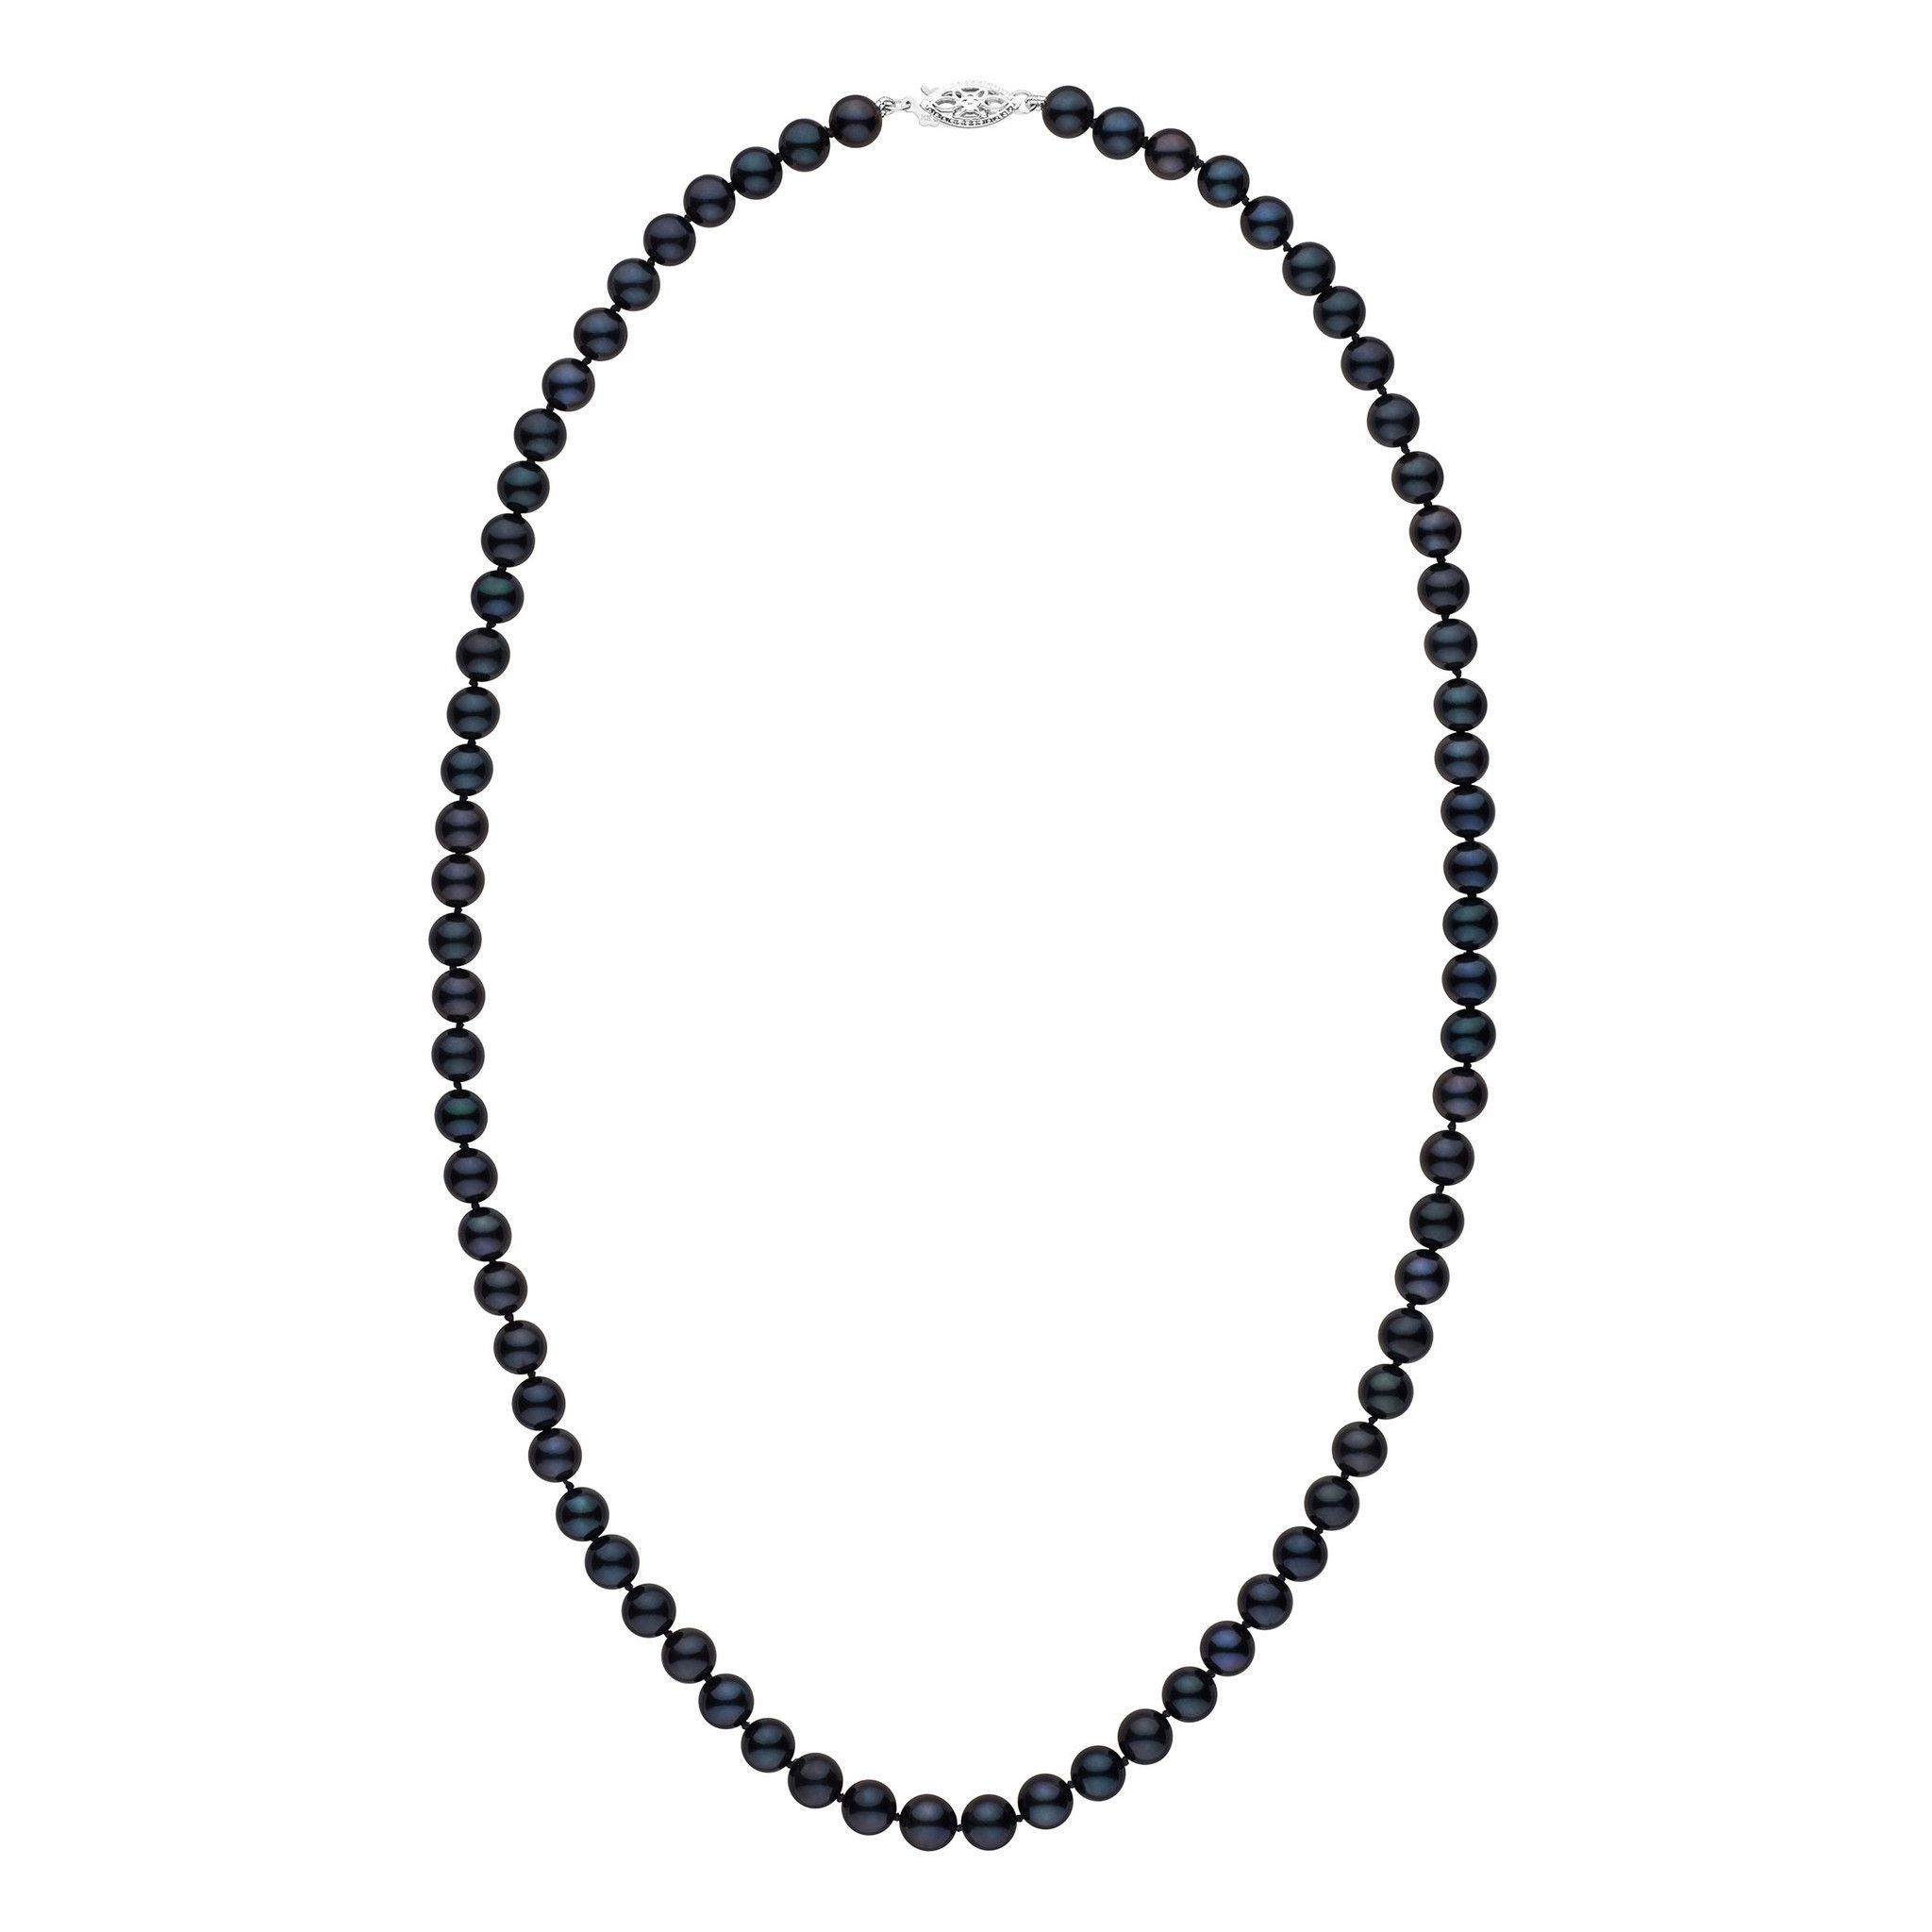 6.0-6.5 mm 22 inch AA+ Black Akoya Pearl Necklace